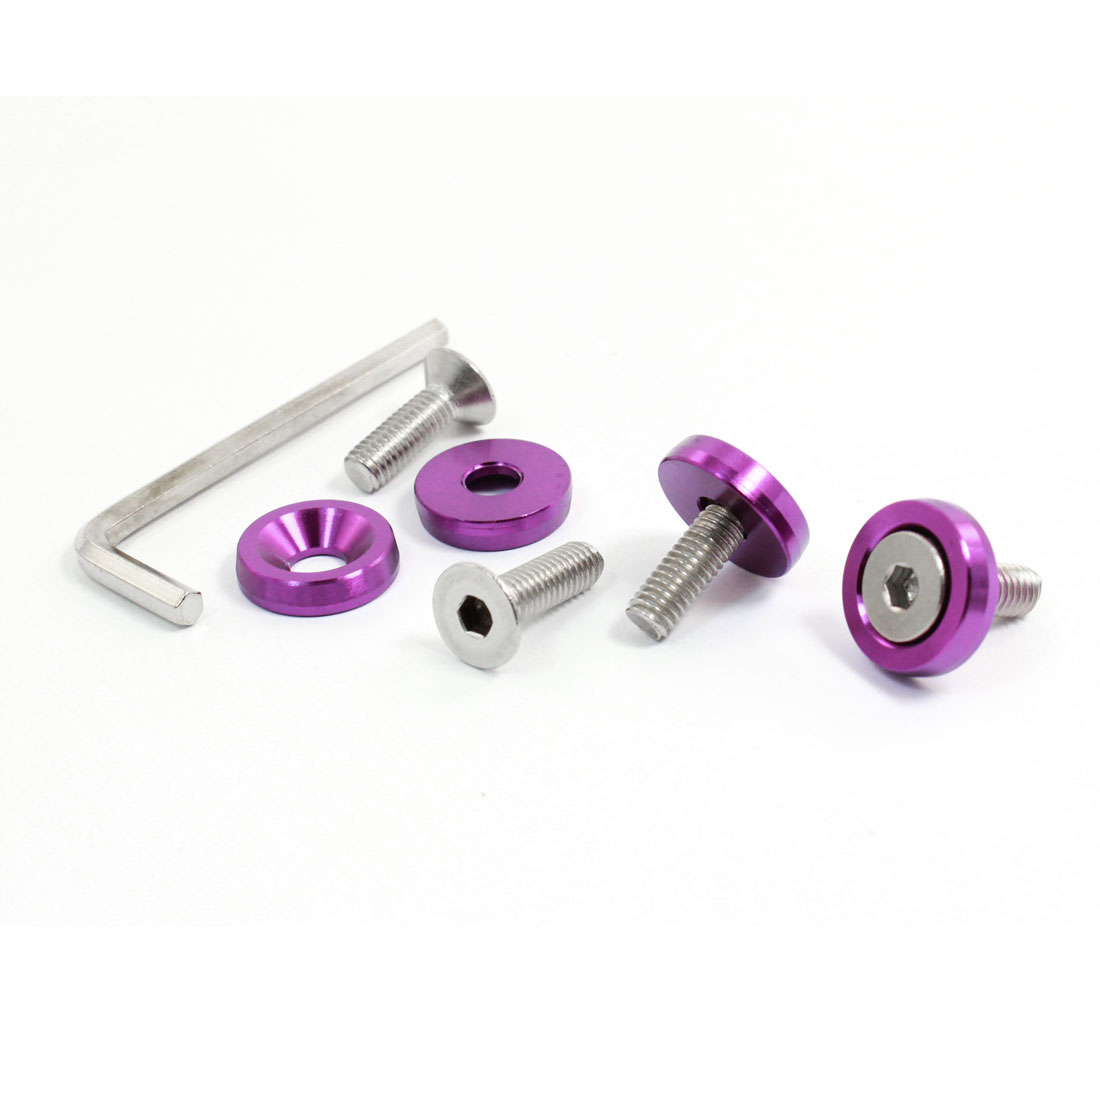 4 Pcs Purple Metal Motorcycle Car License Round Head Plate Screw Bolt Decoration